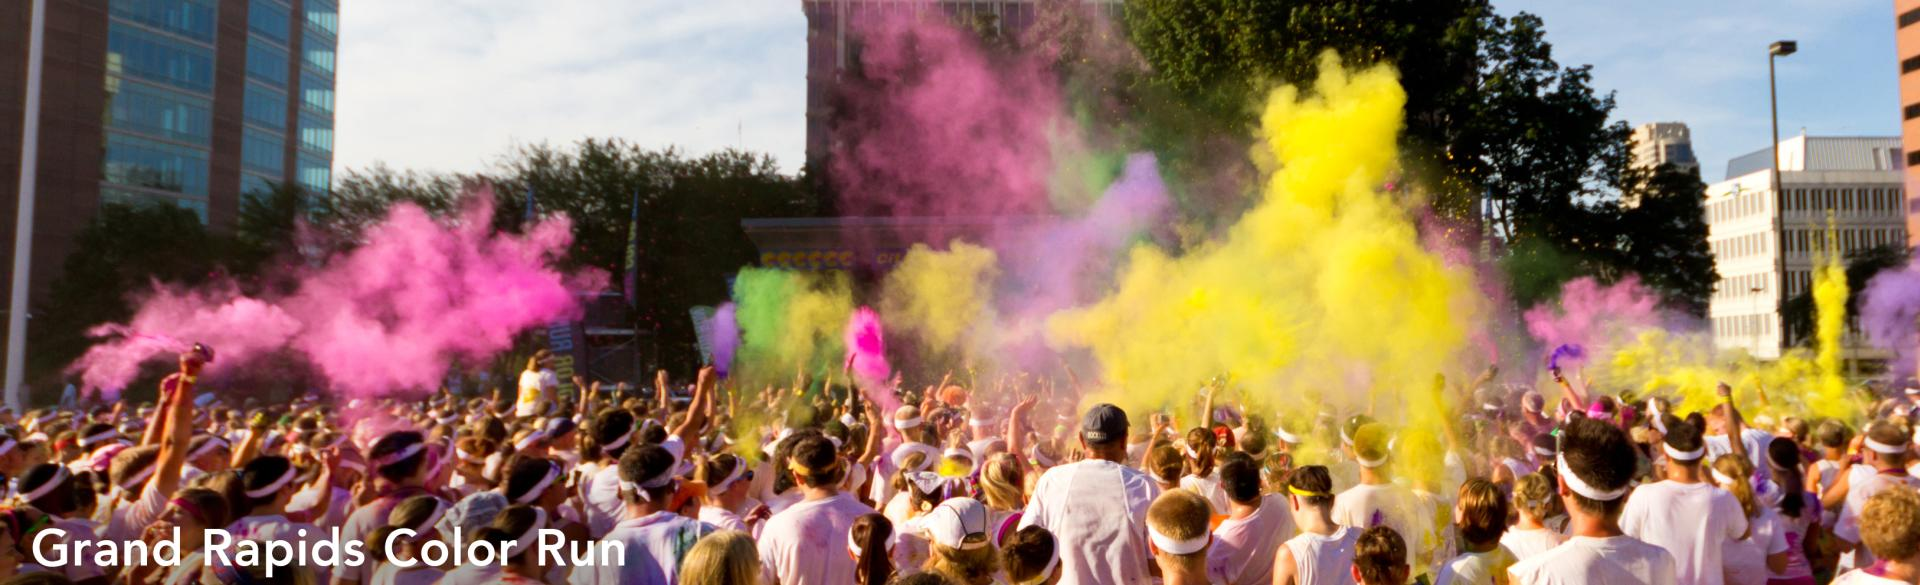 Grand Rapids Color Run